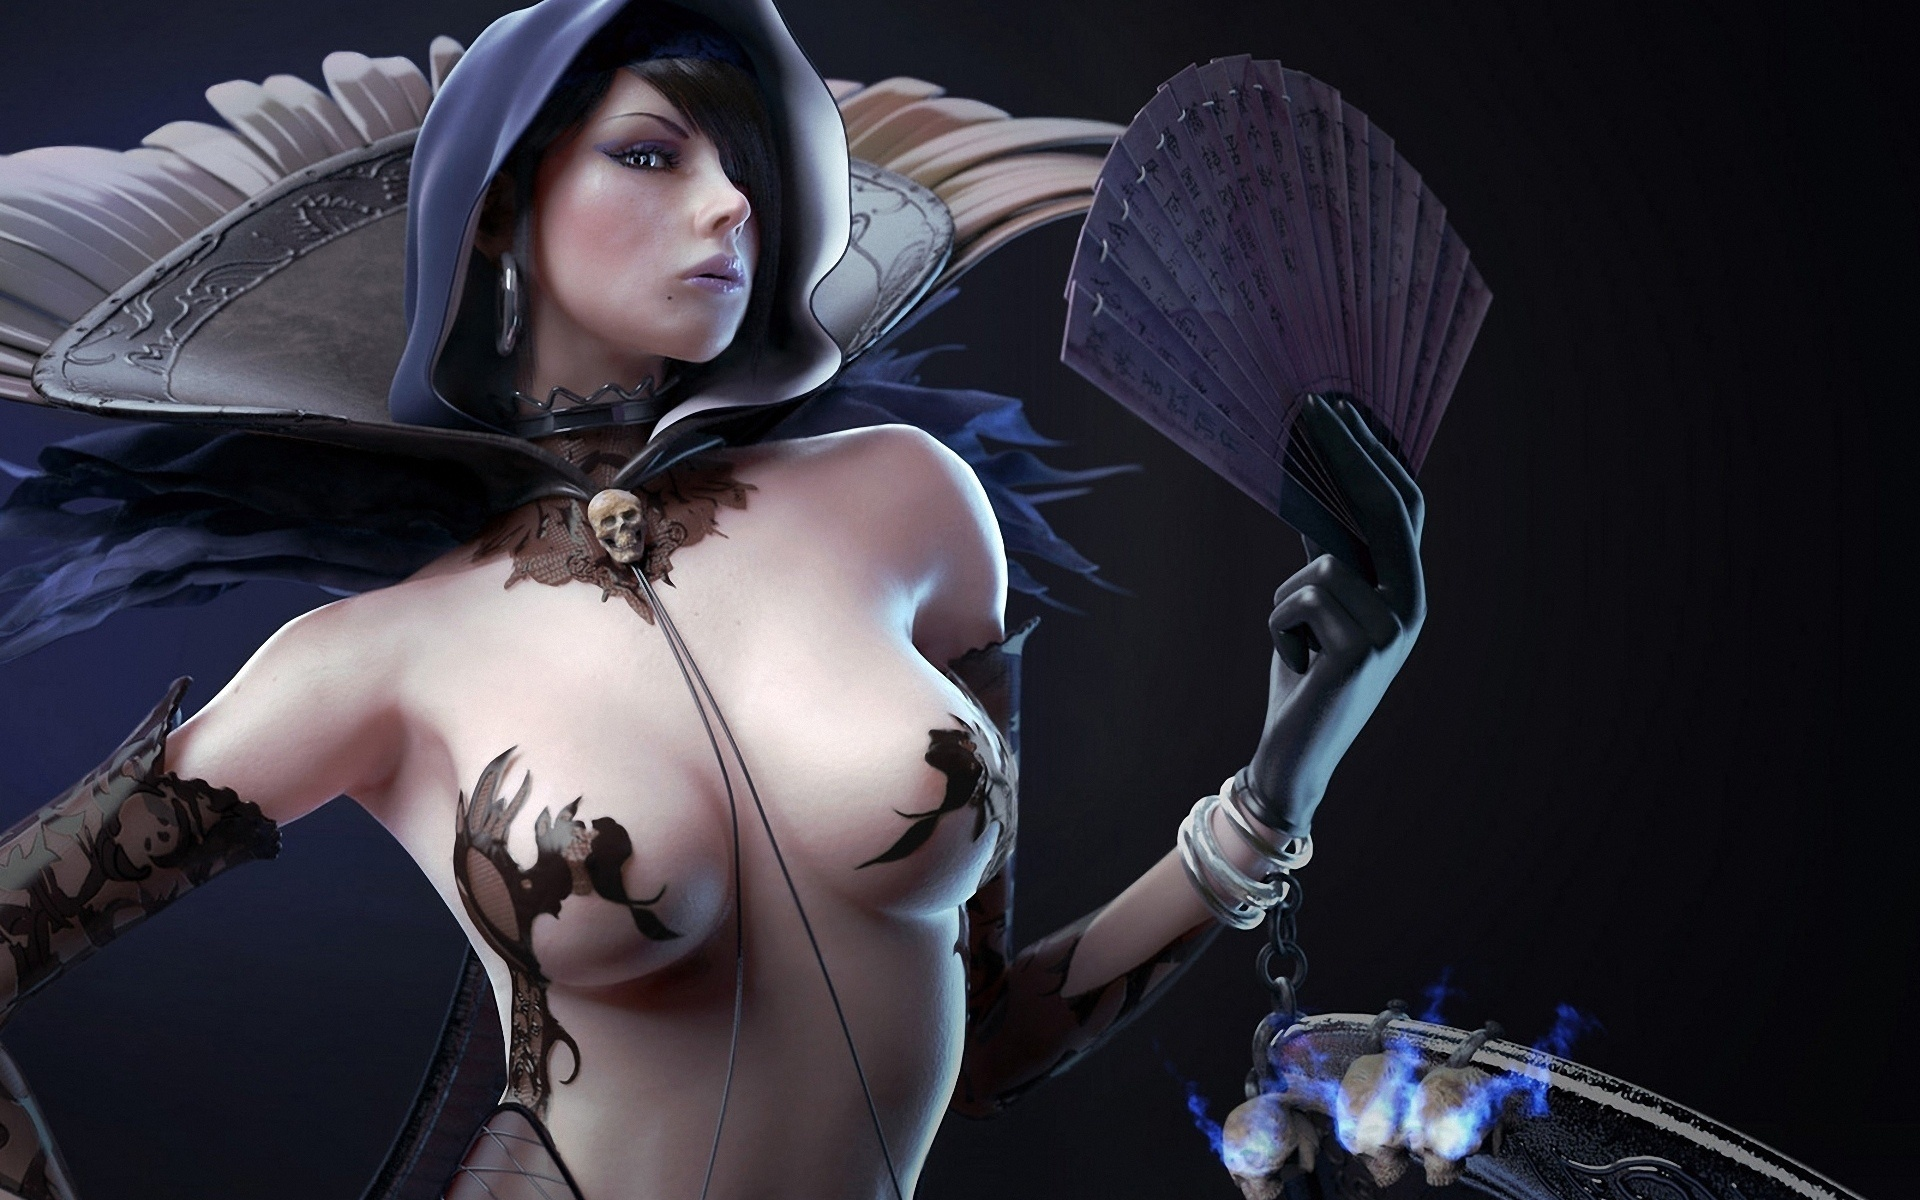 Busty hot sexy fantasy desktop backgrounds — pic 5